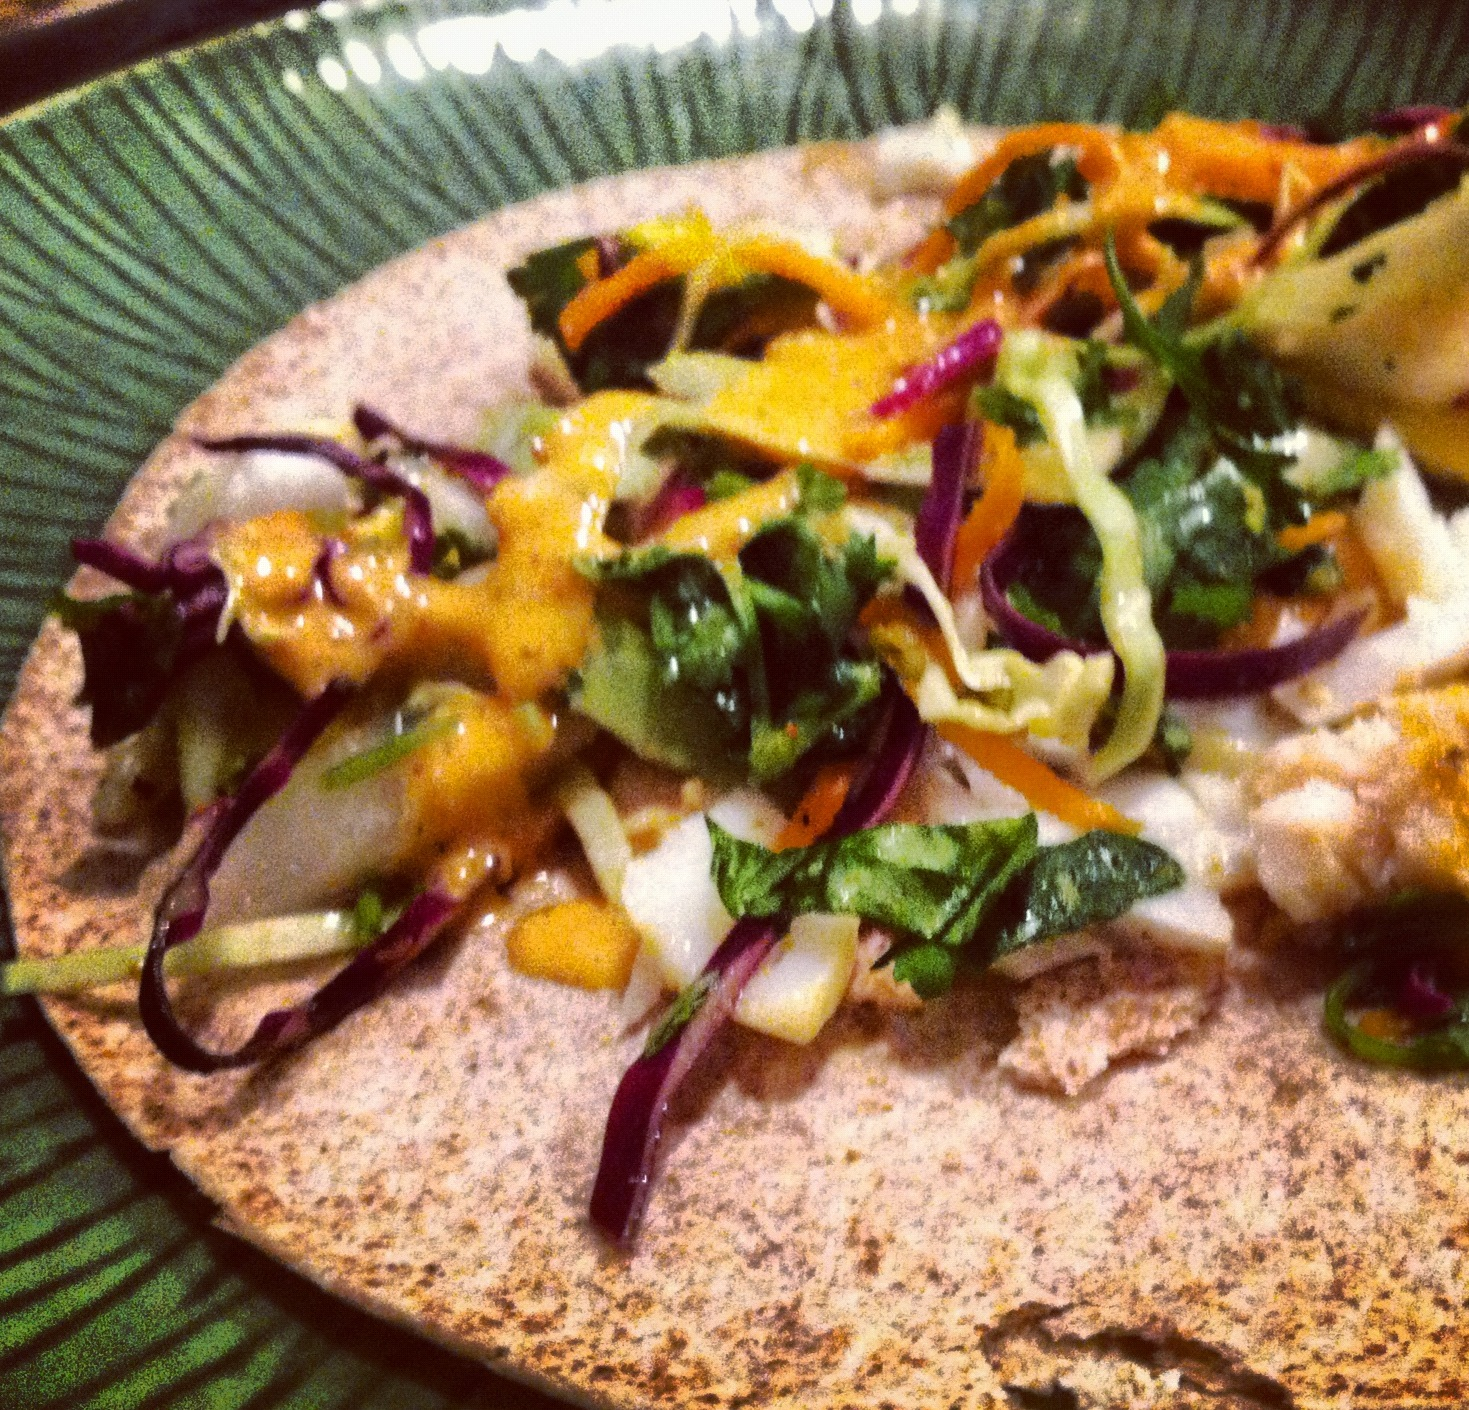 Farshicle august 2012 for Best fish taco recipe in the world